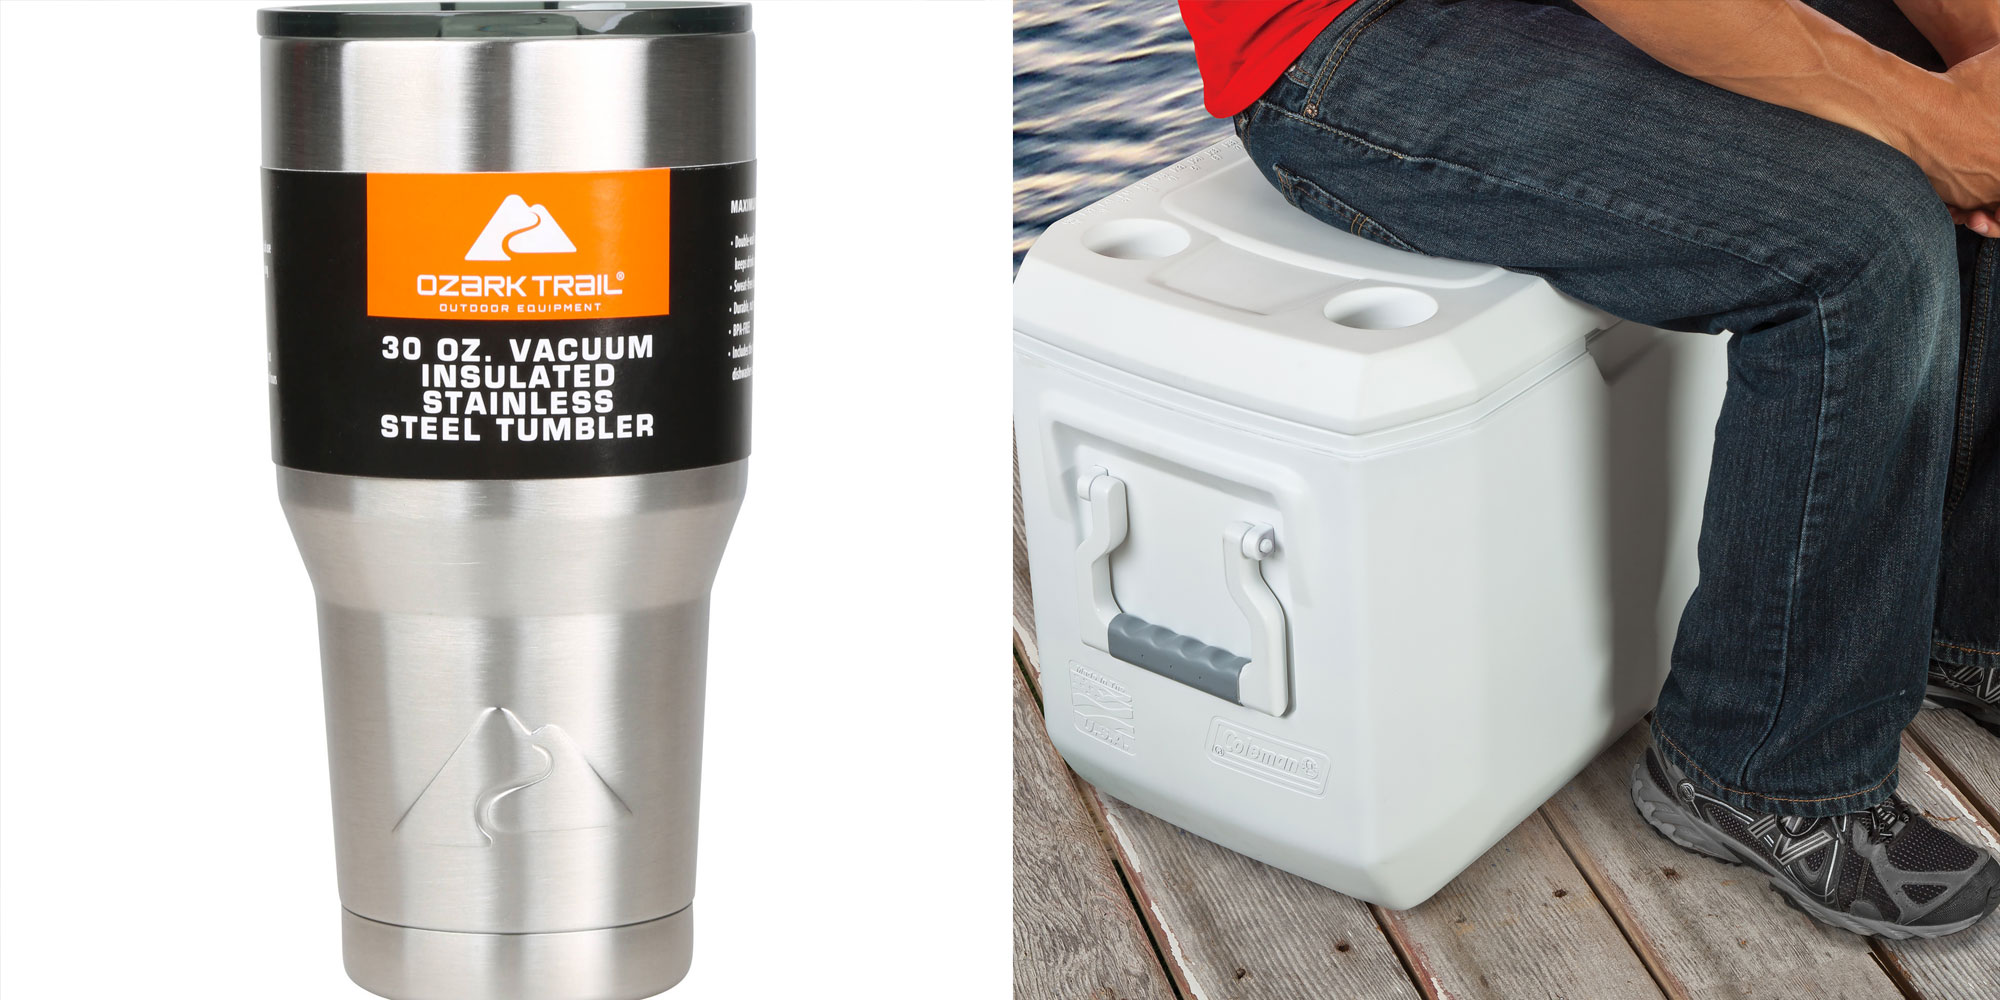 Coleman's 70-Qt. Xtreme Marine Cooler + 2 Ozark Trail 30-Oz Tumblers for $37.50 shipped